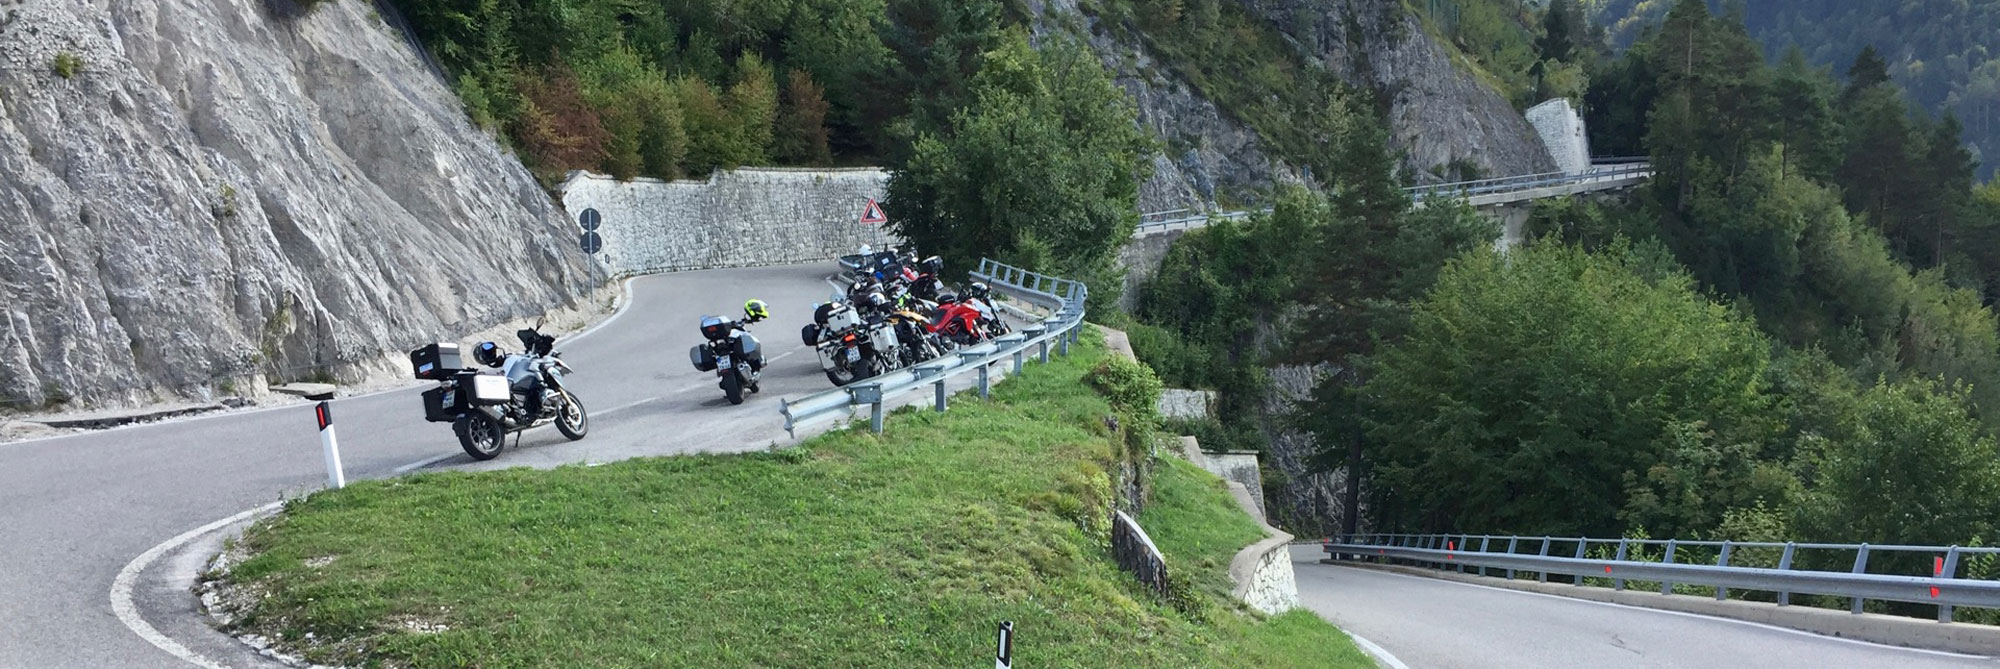 Alps Riding Academy